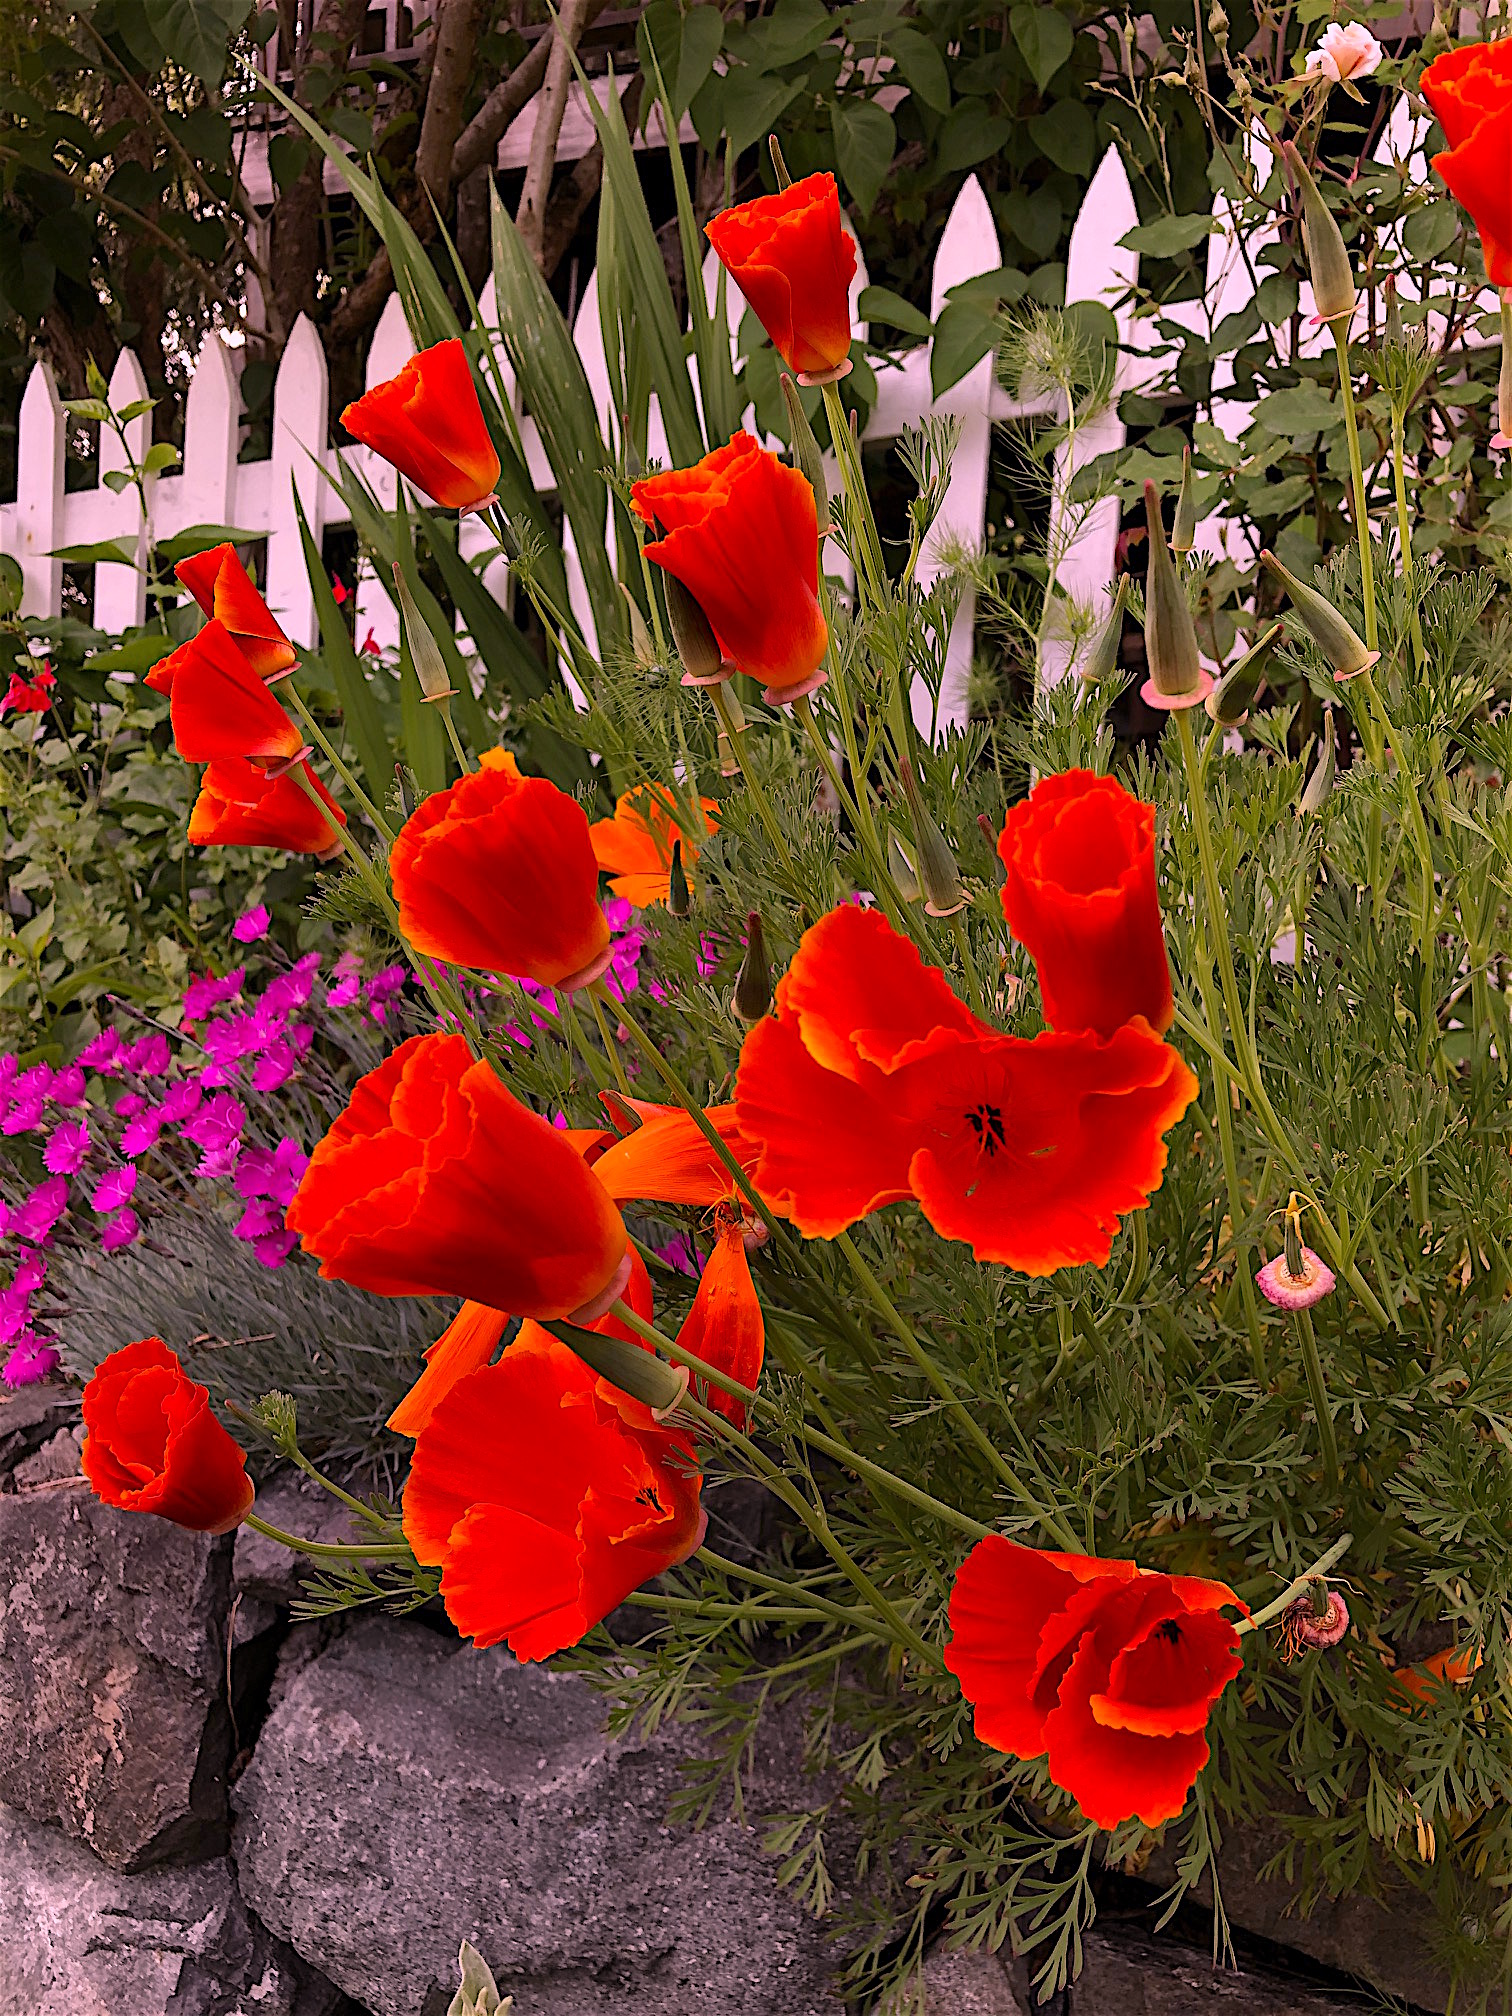 Red Calif poppies 5.18.2020